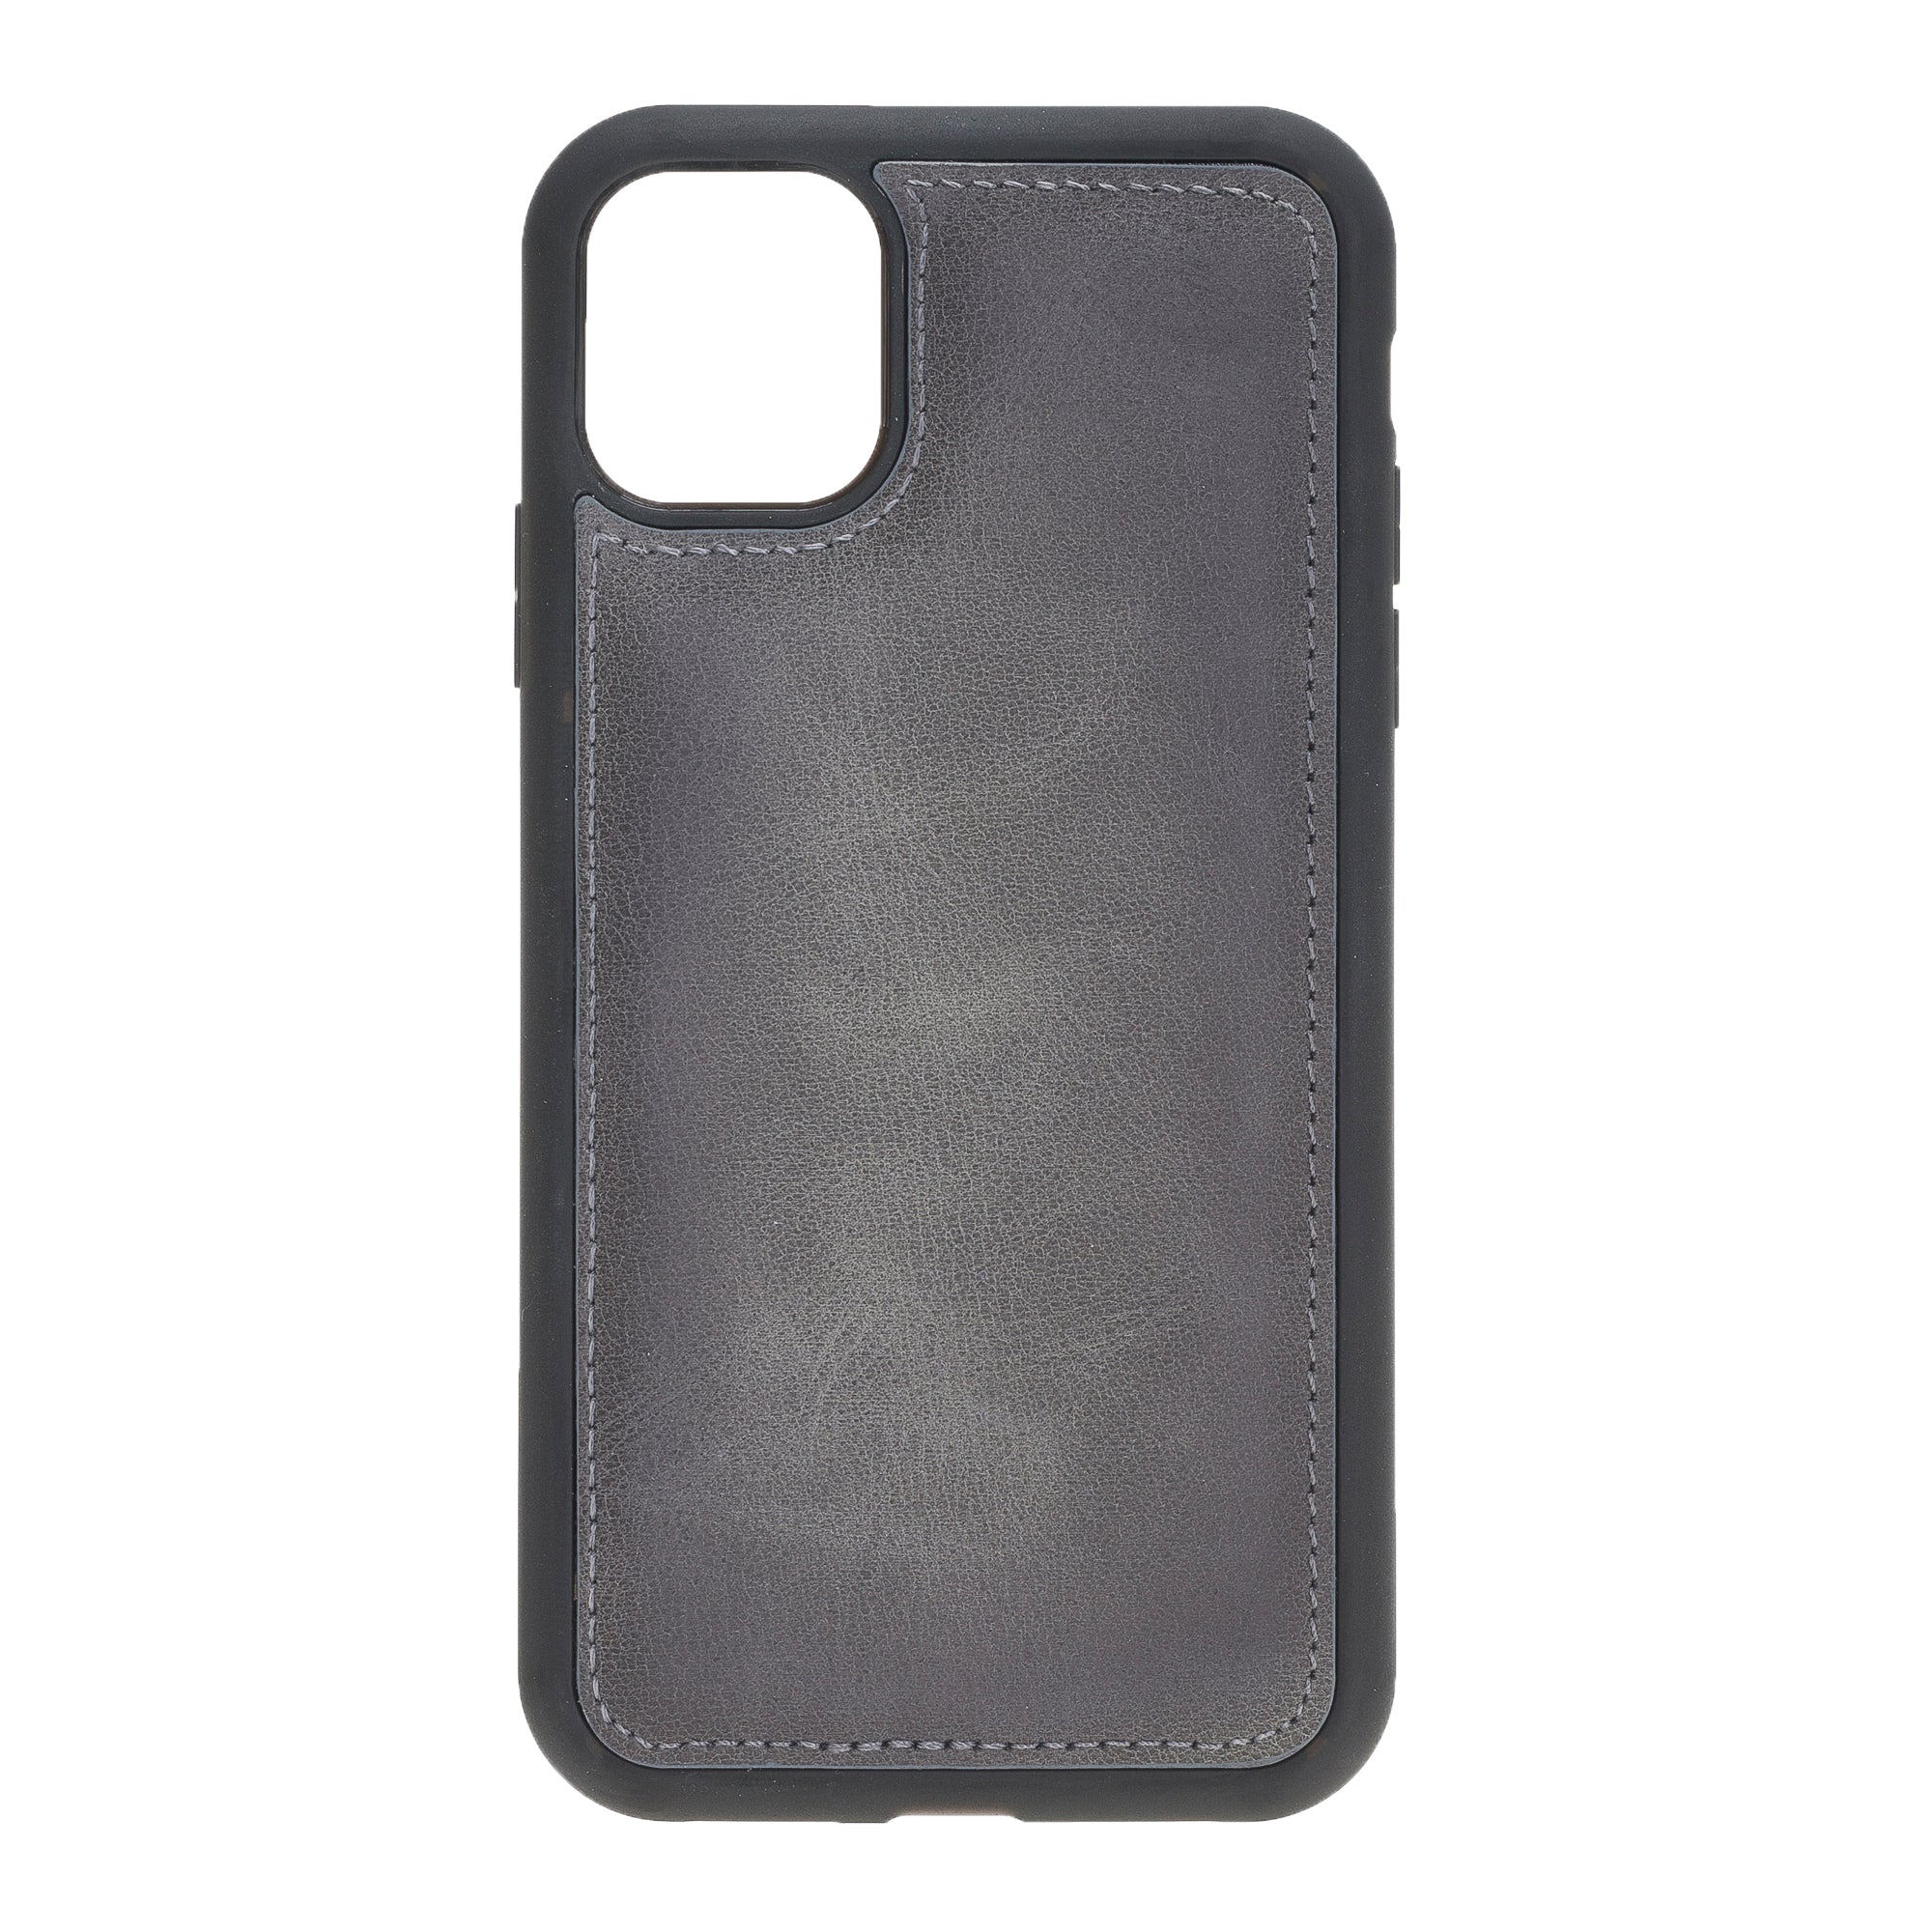 iPhone Pro Max Cases